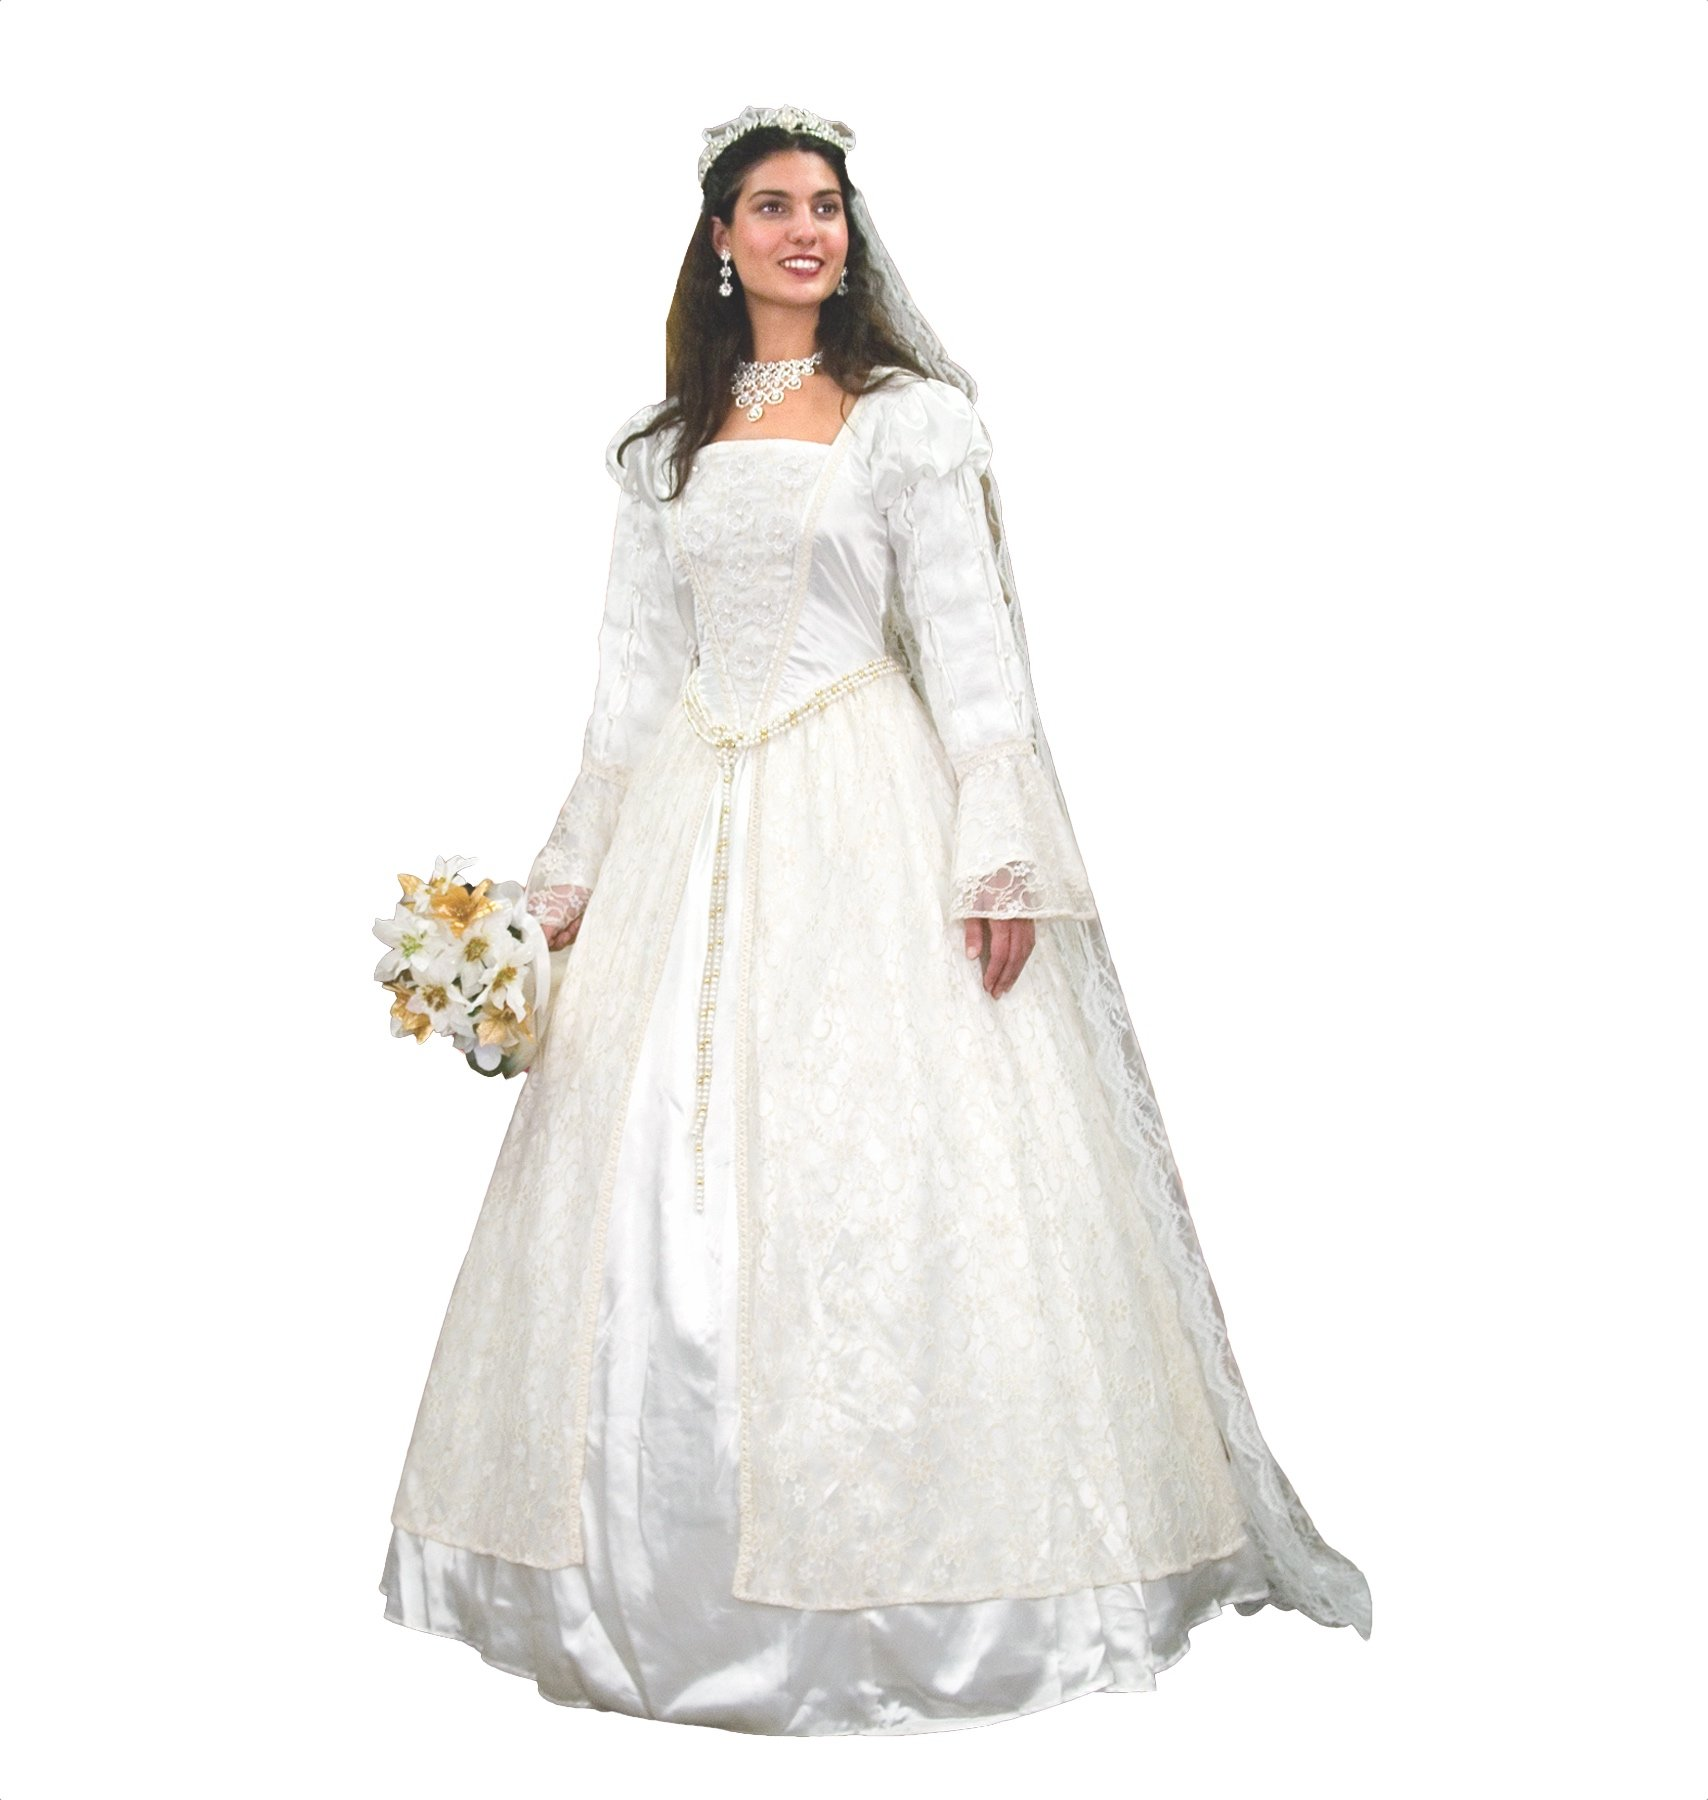 Renaissance Wedding Gown & Veil w/ Flowers and Pearls (Small)